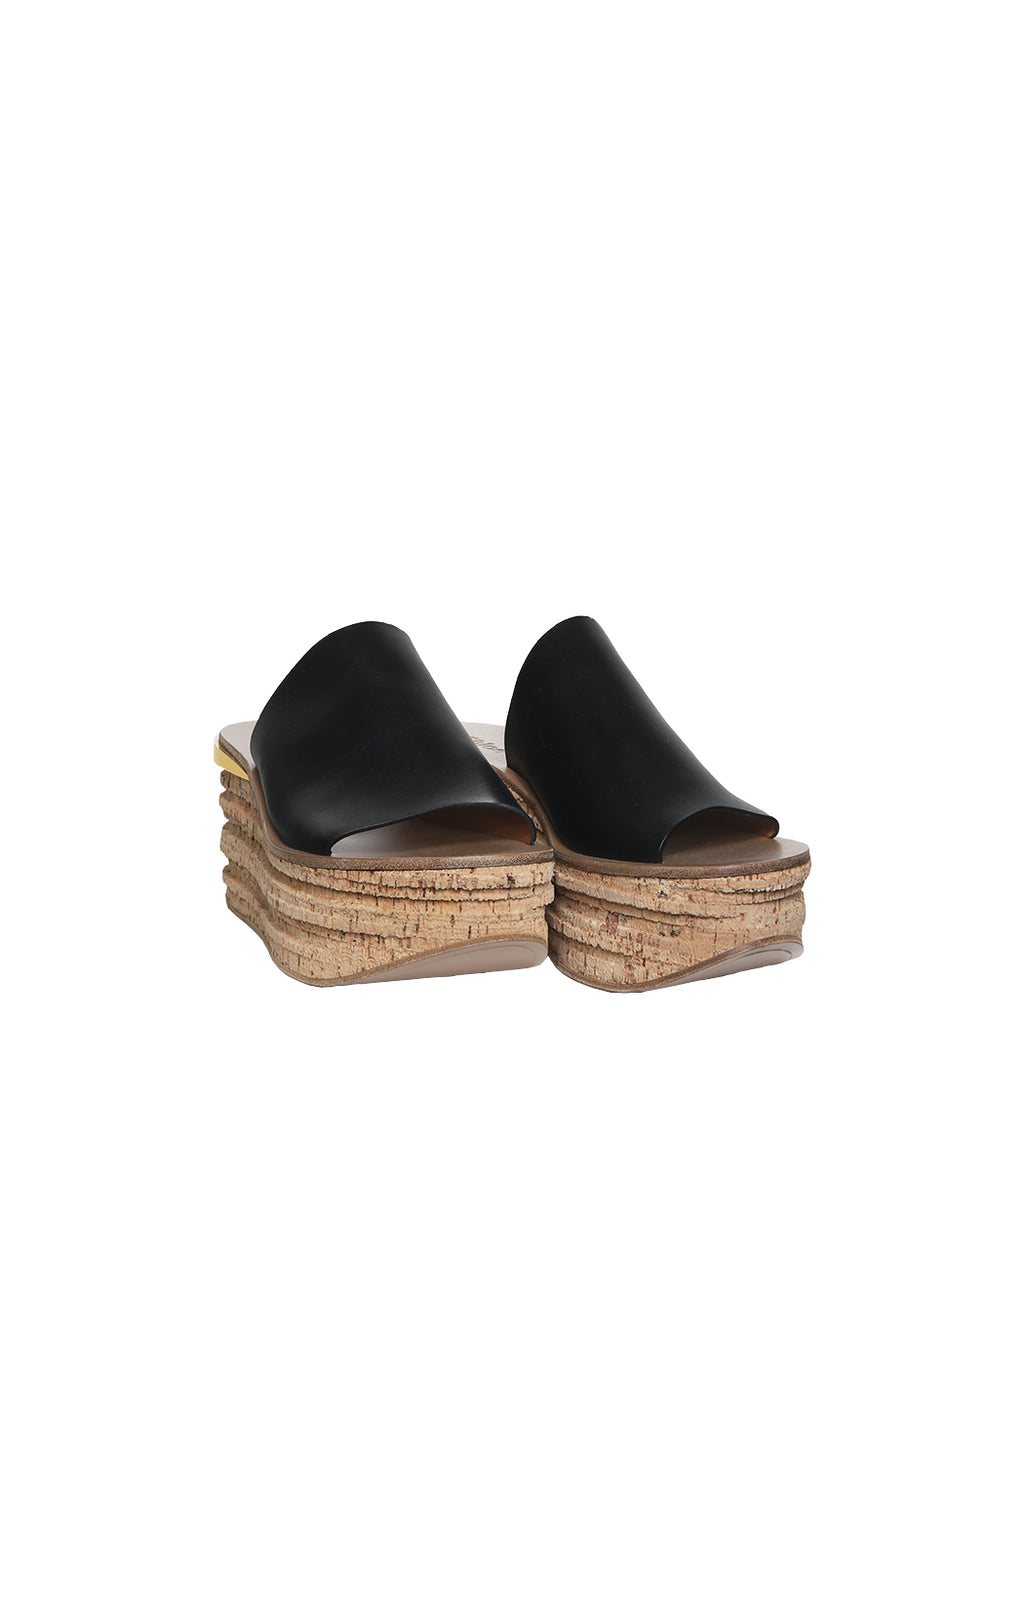 Front view of CHLOE  Wedges Size: 39 (US 9)